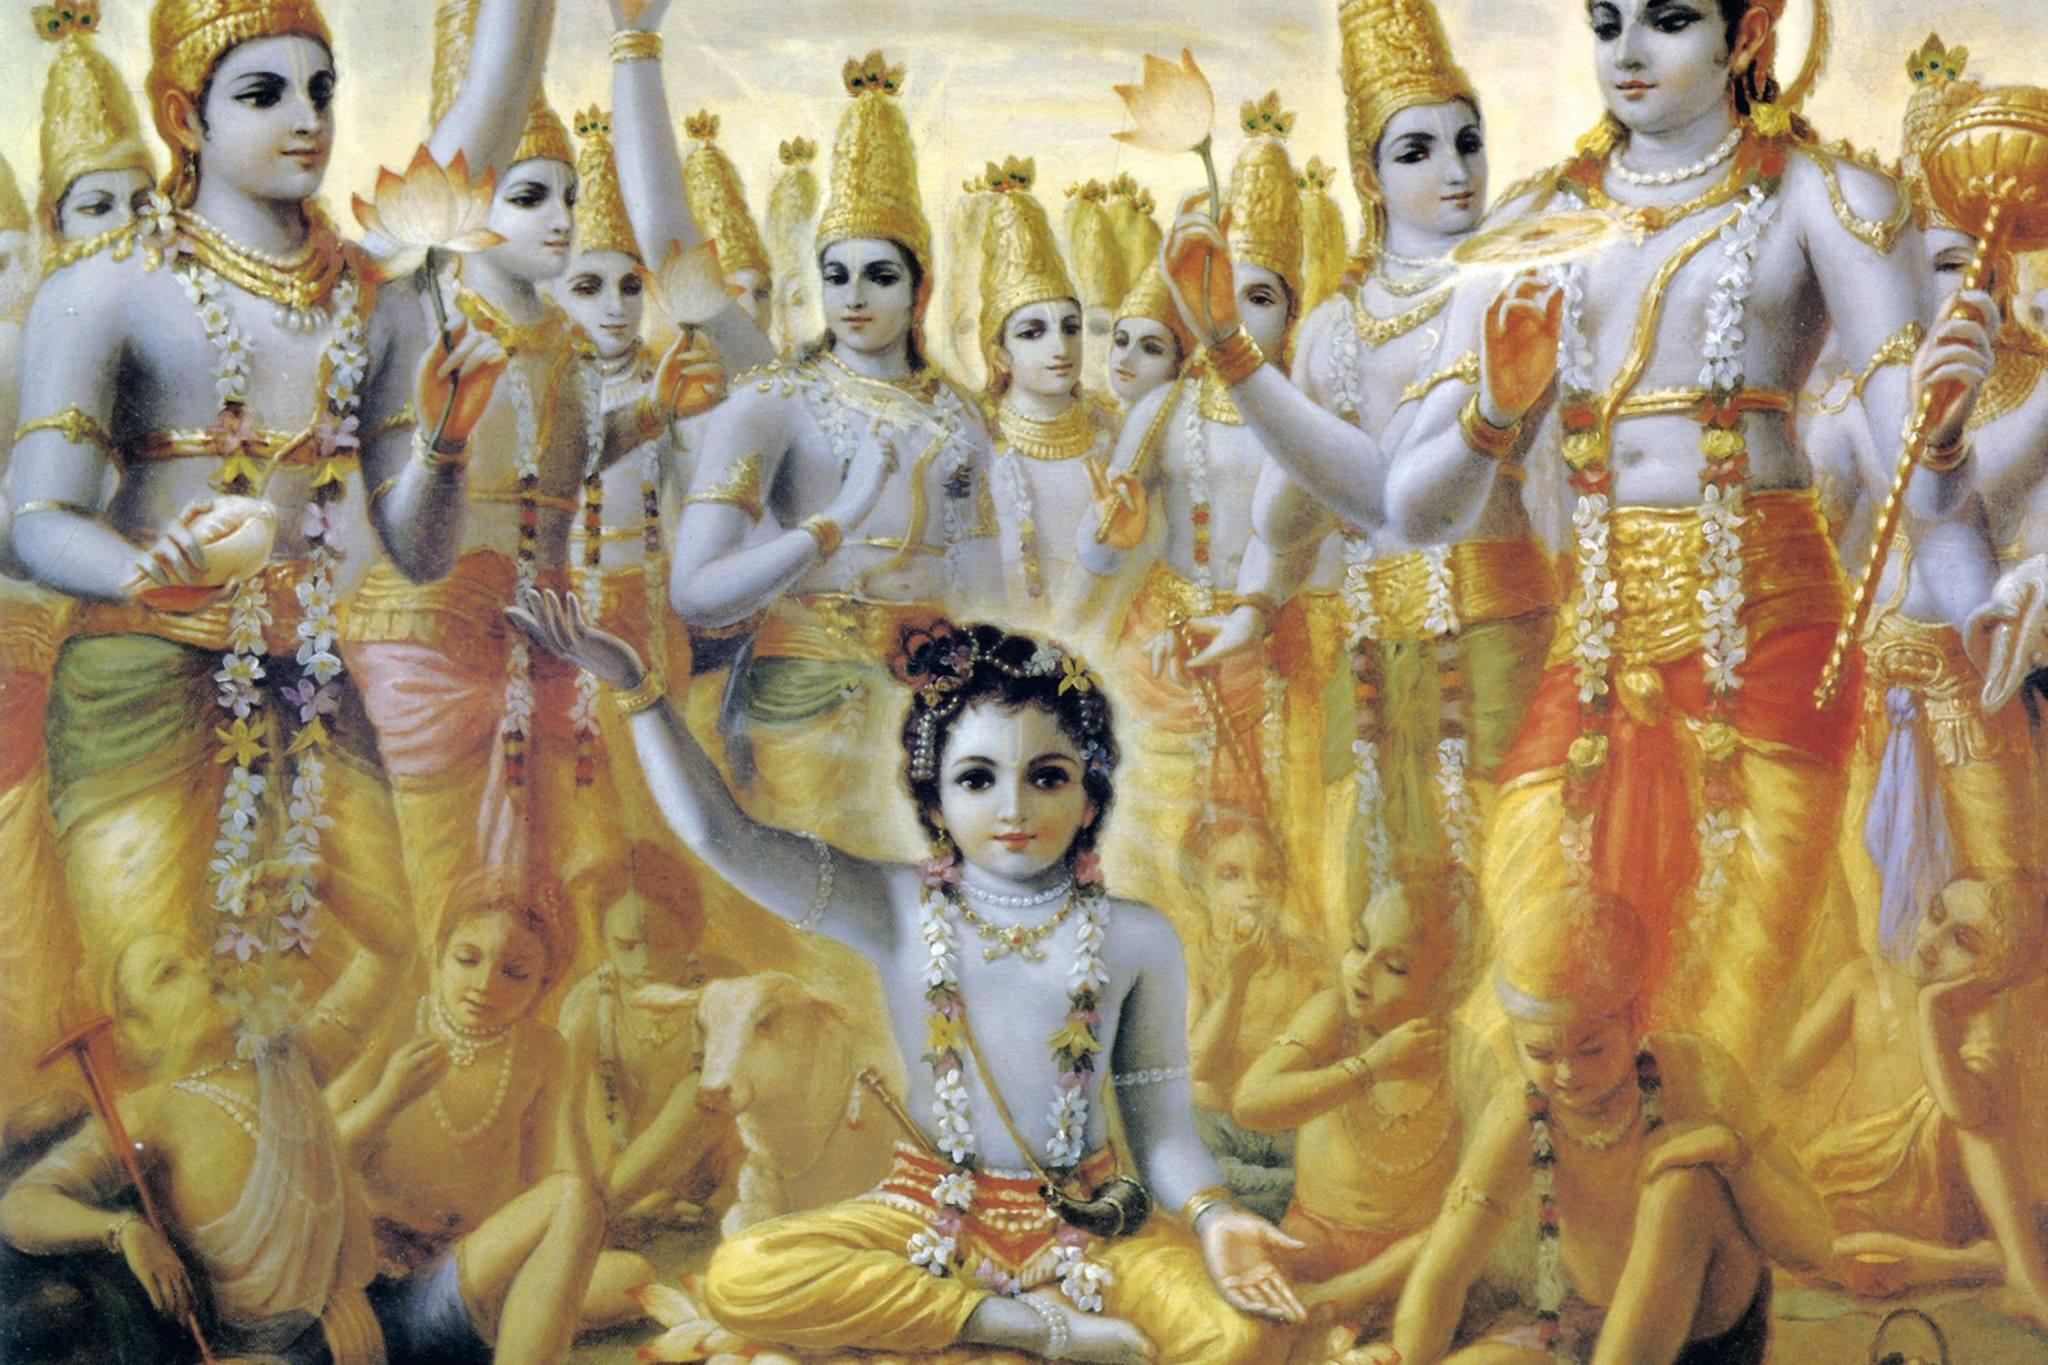 What is the Viraat Roop of Krishna in the Mahabharat